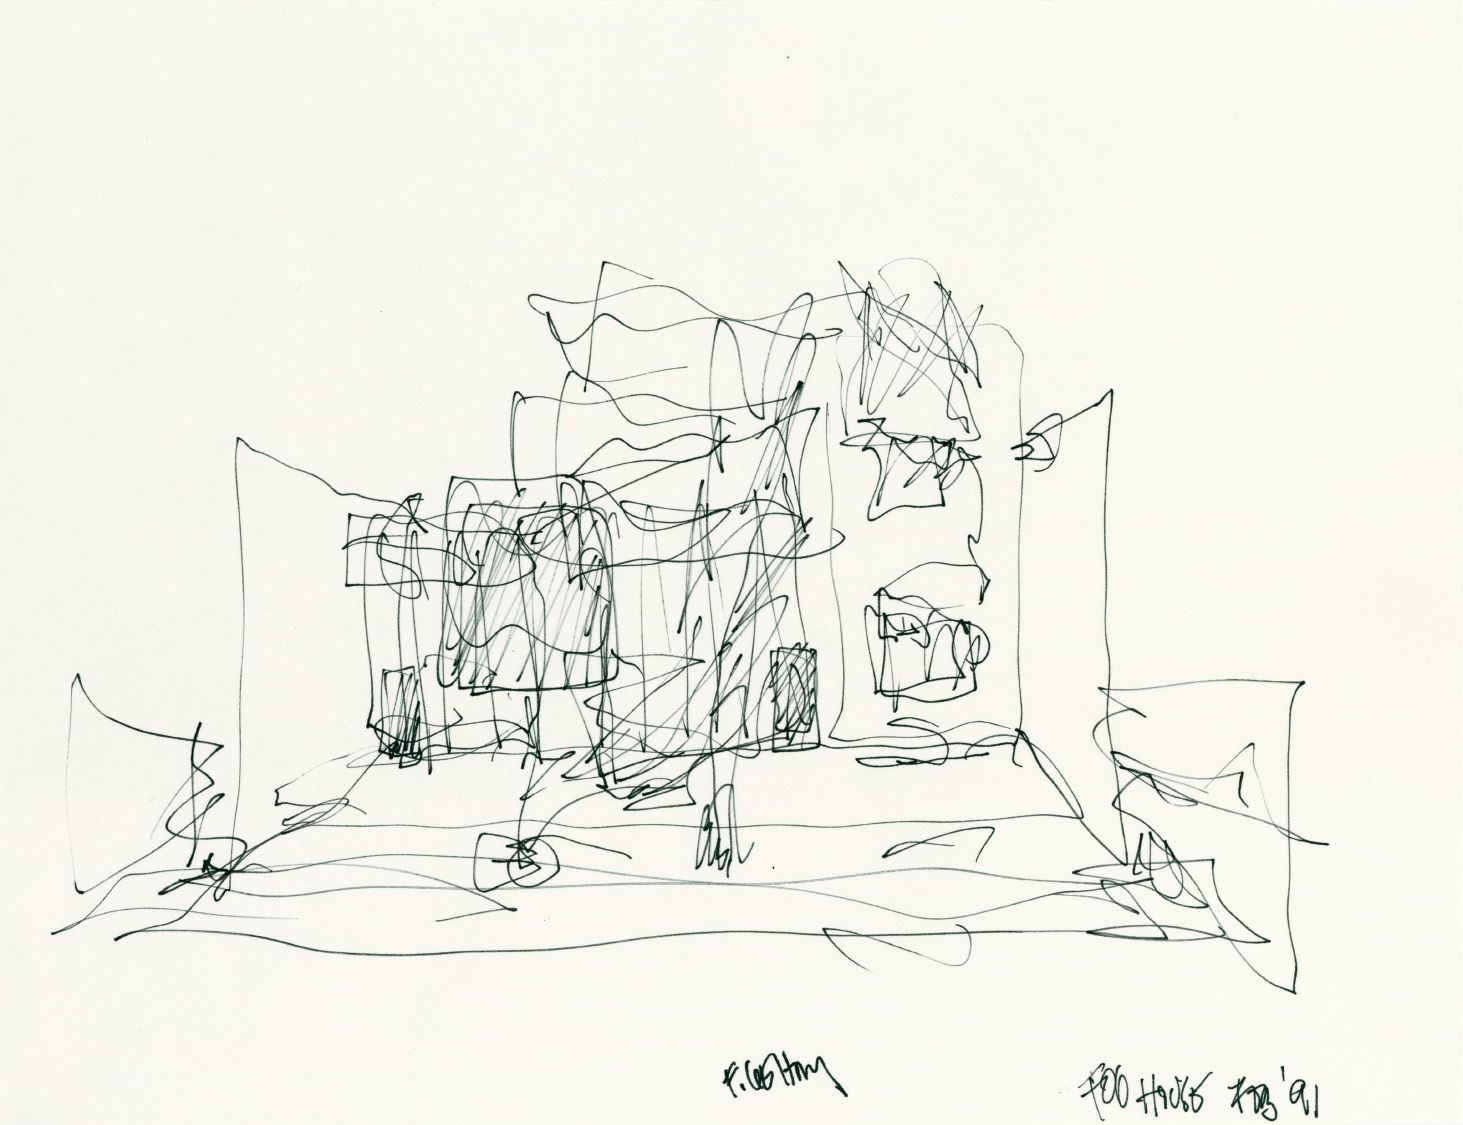 Frank Gehry S Sketch Of Gehry Residence Santa Monica